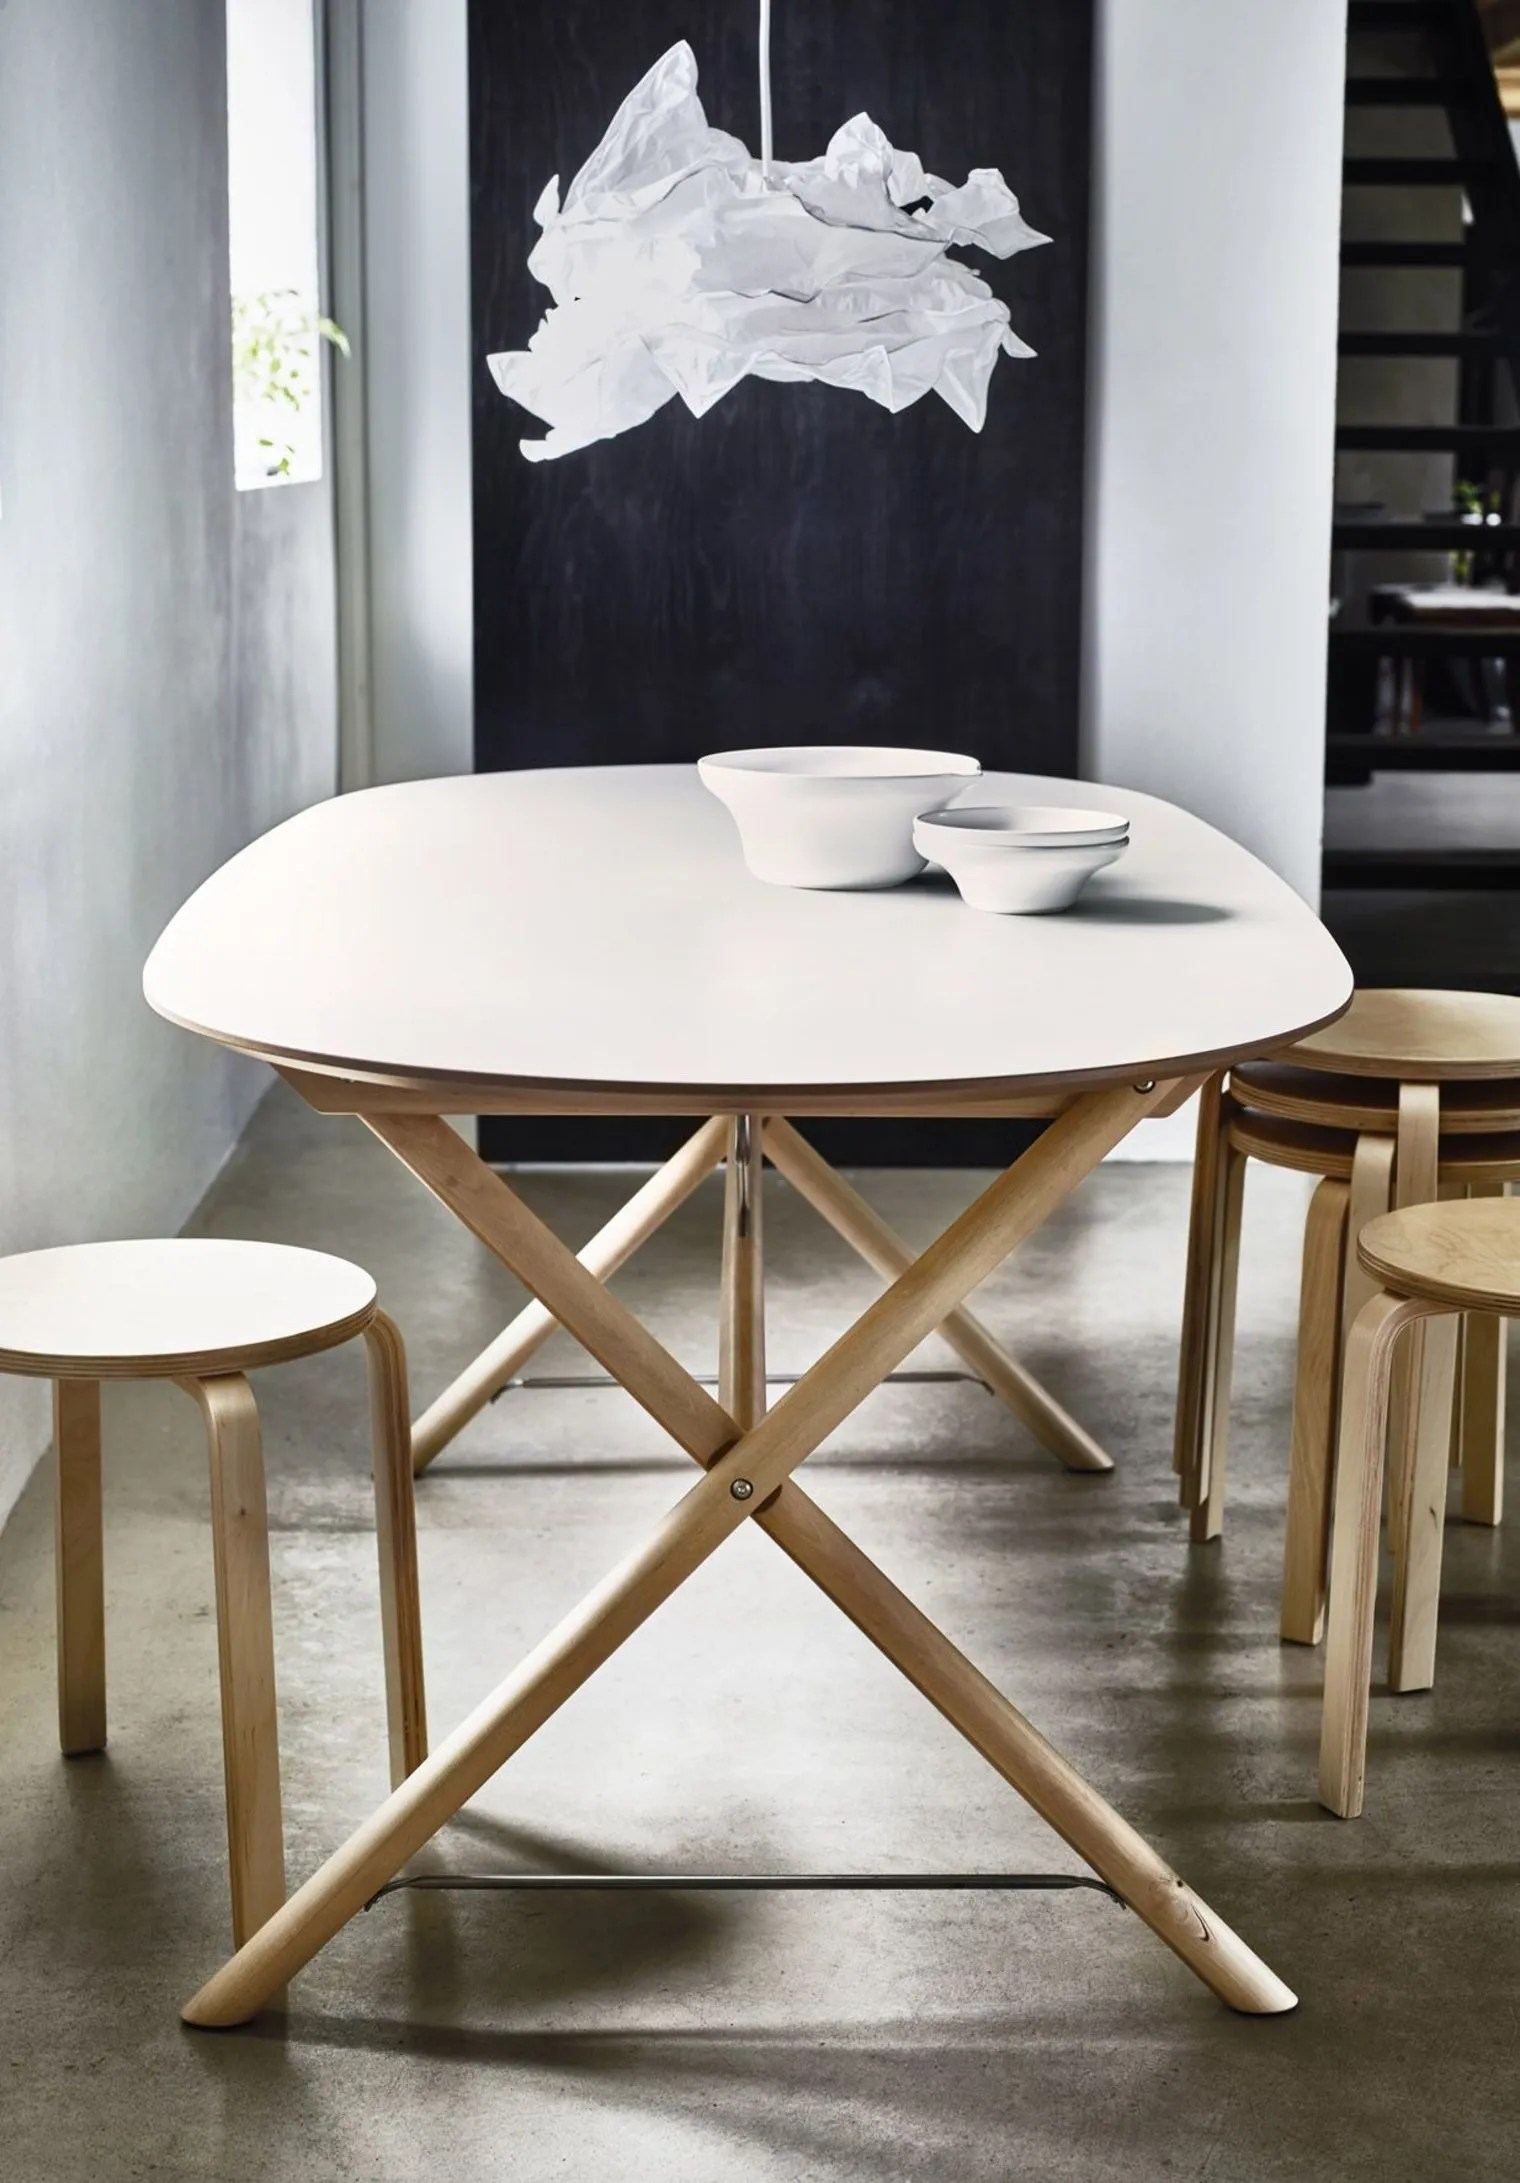 table de salle manger extensible ikea table ronde ovale ikea pas cher table ronde with table. Black Bedroom Furniture Sets. Home Design Ideas